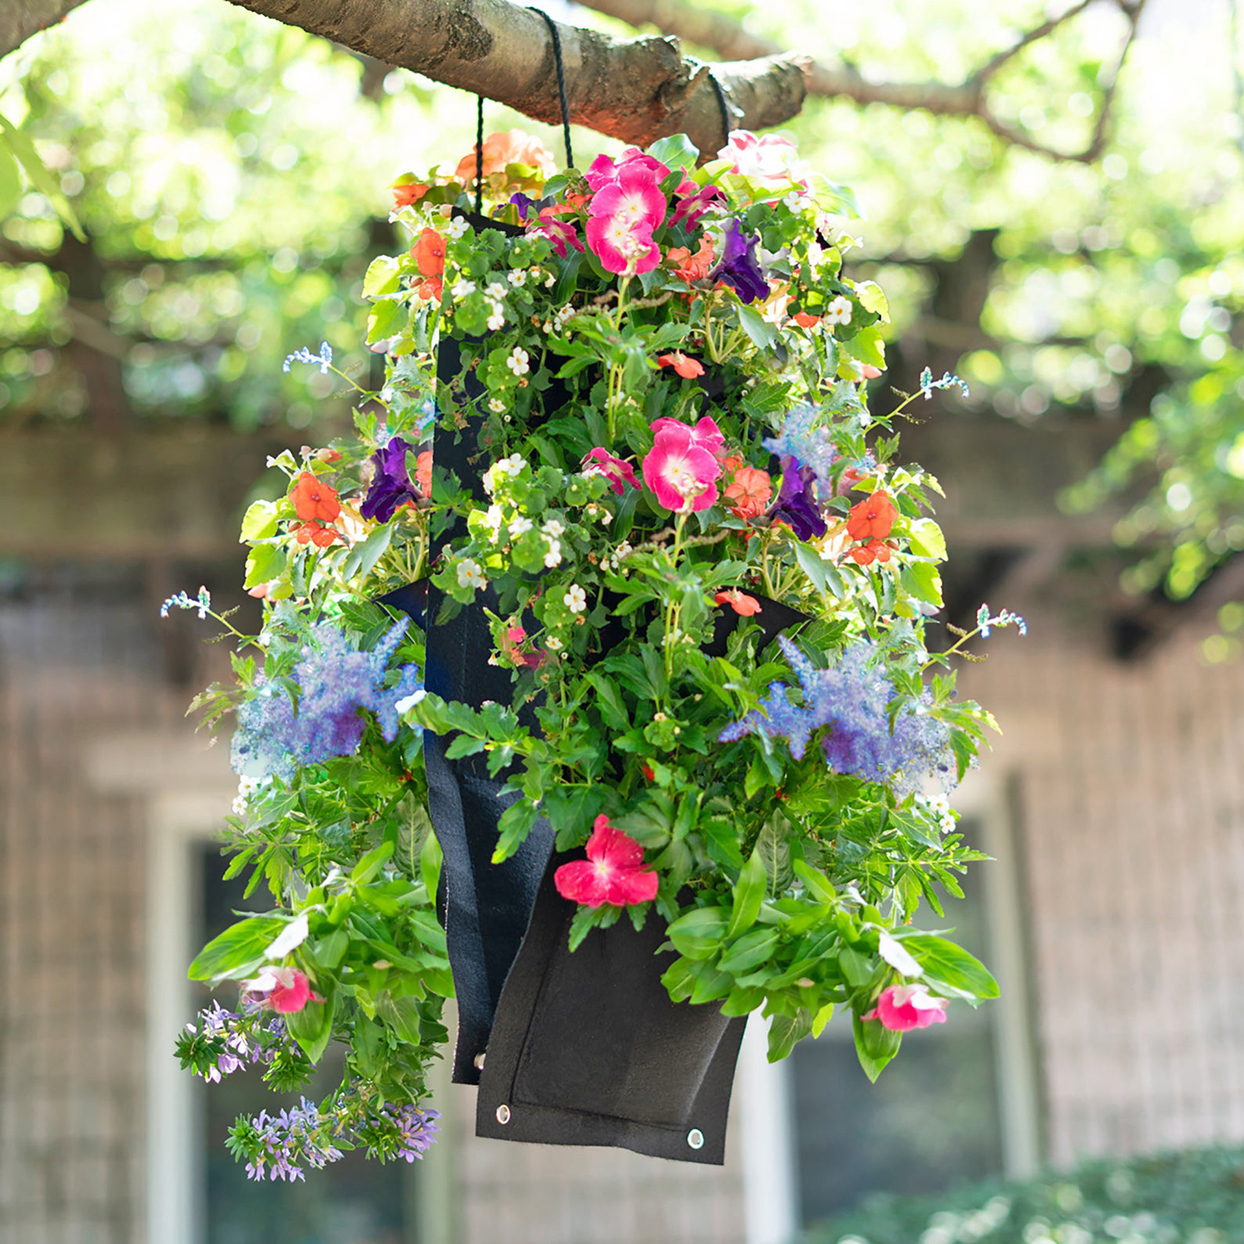 Vertical Hanging Flower Garden Planter Grow Bag Kit with Annuals to Attract Hummingbirds